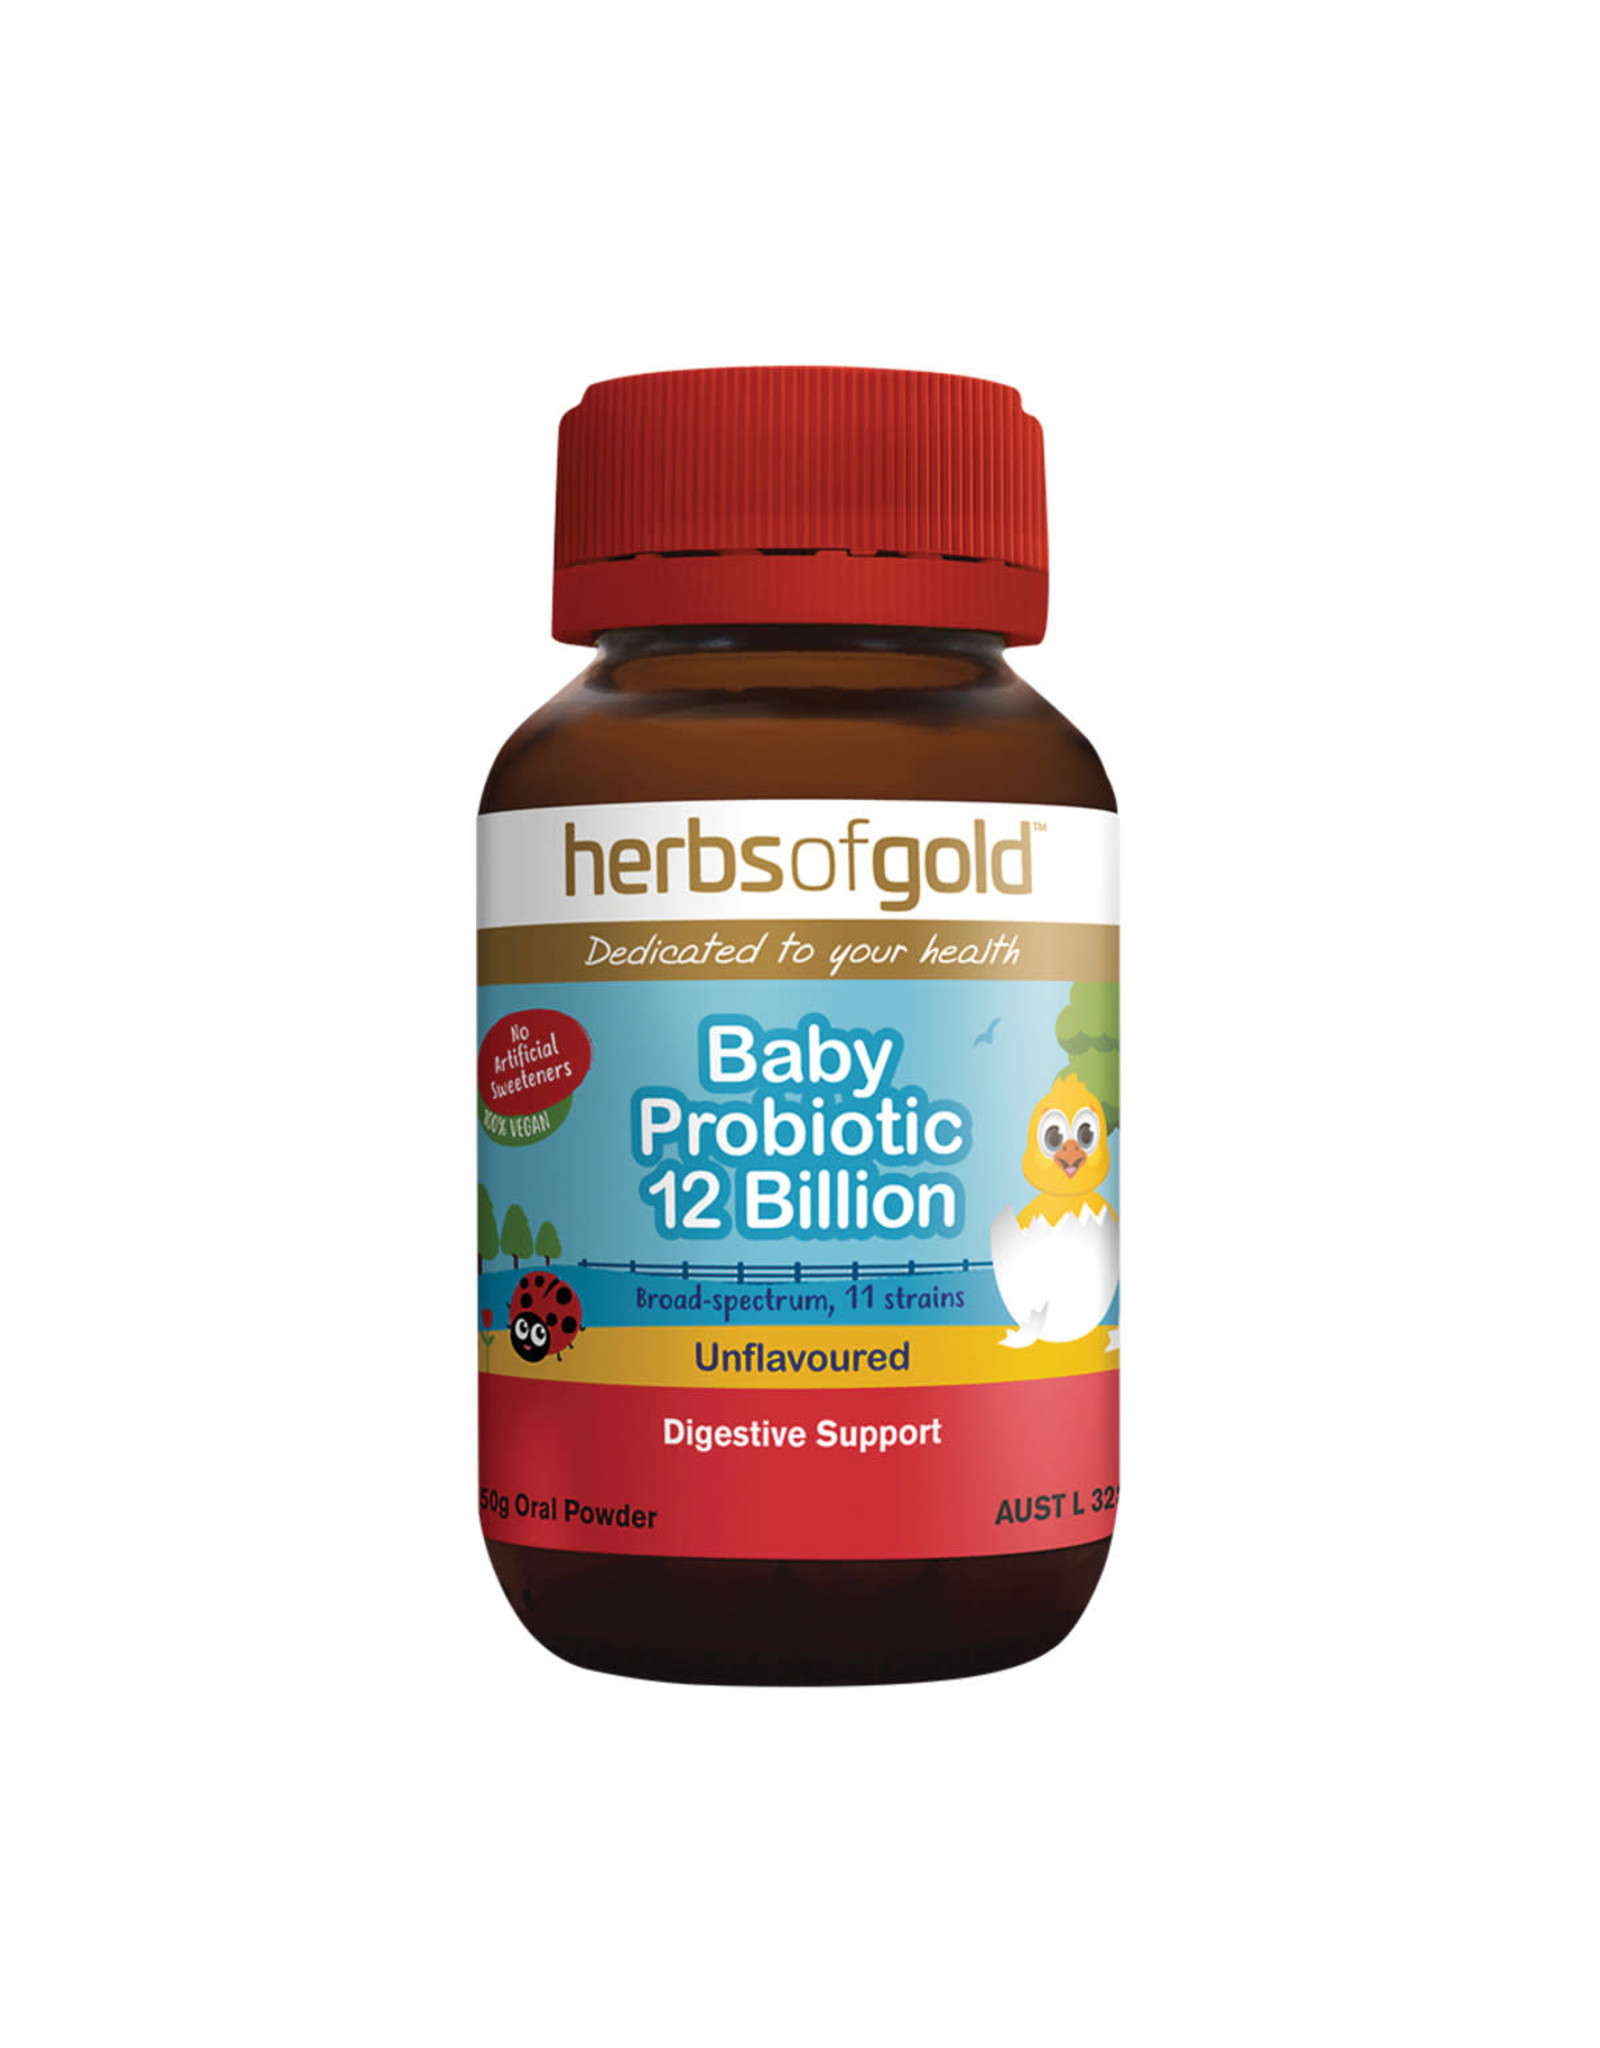 Herbs of Gold Baby Probiotic 12 Billion - 50g